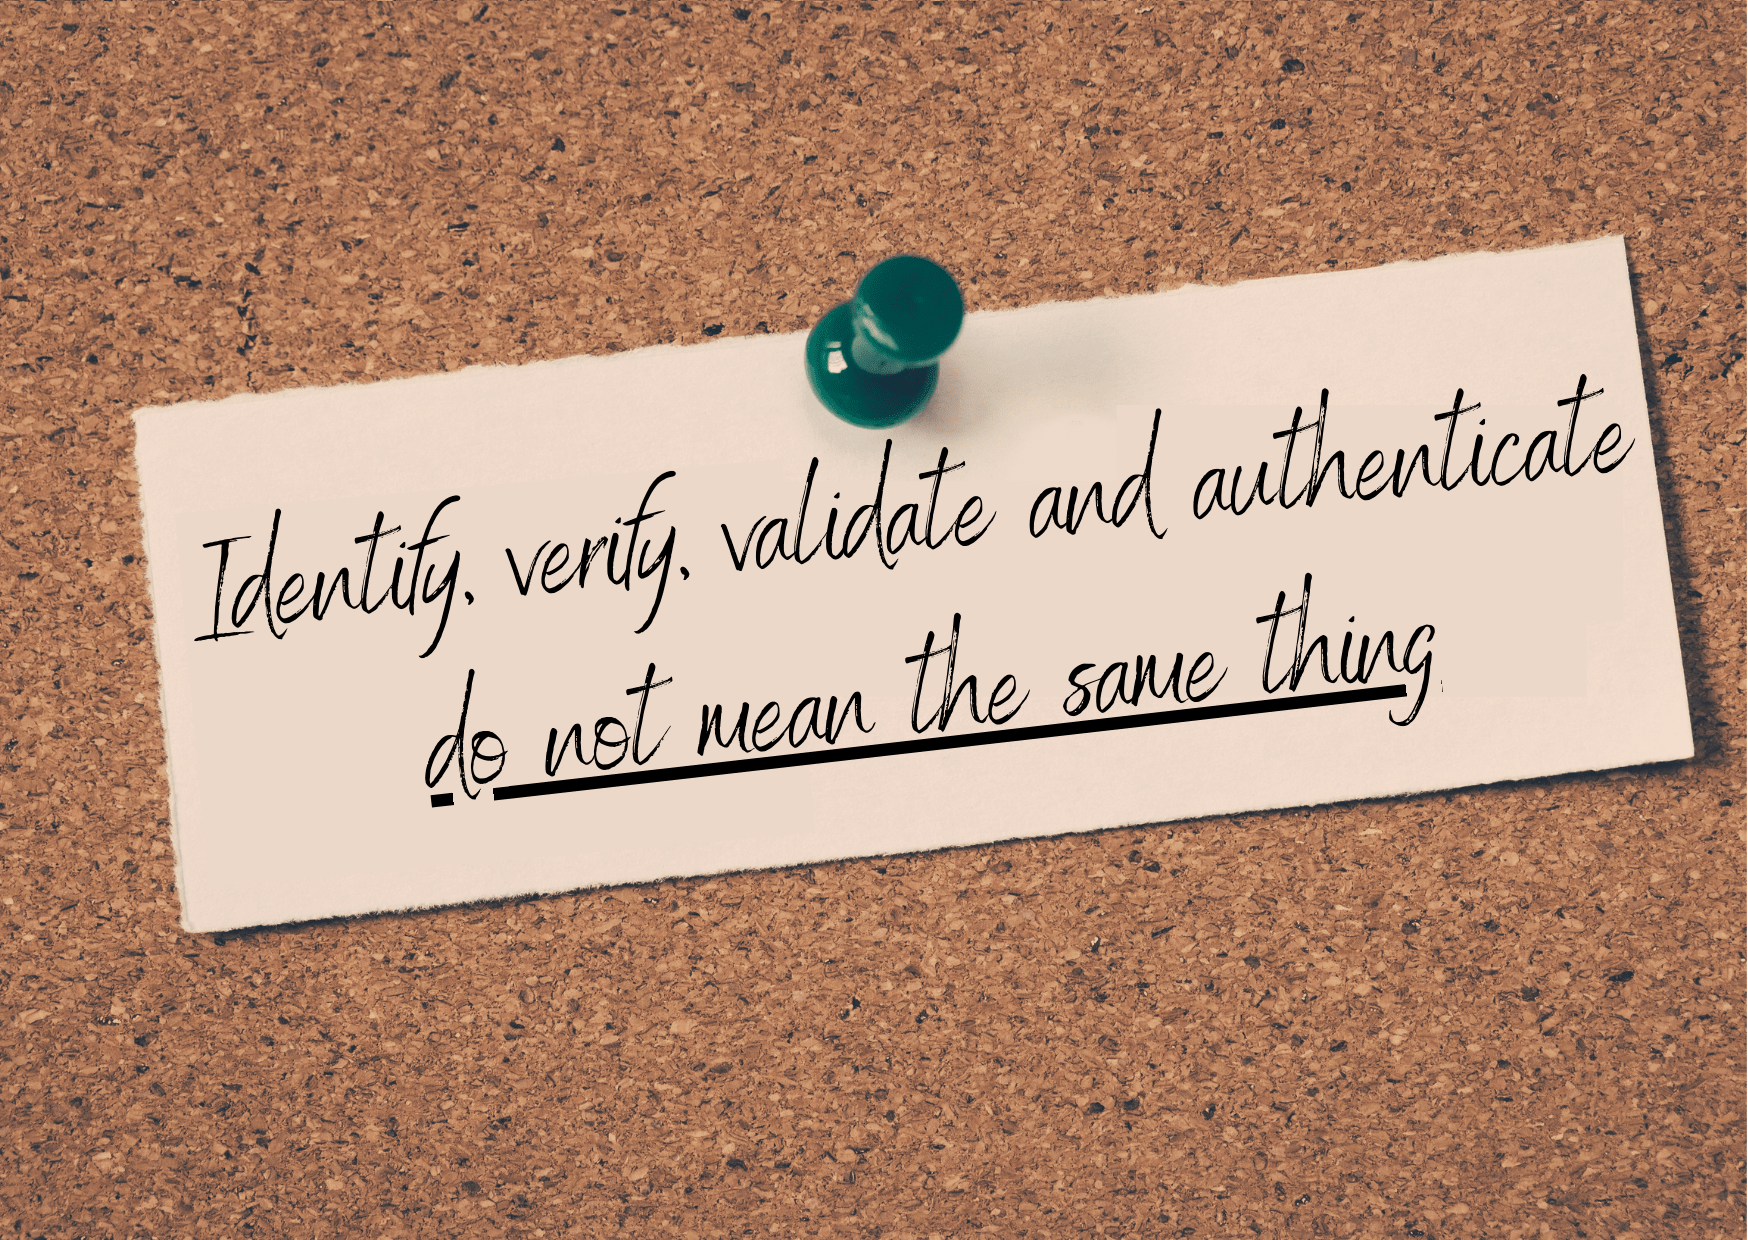 Identify, verify, validate and authenticate are not the same thing